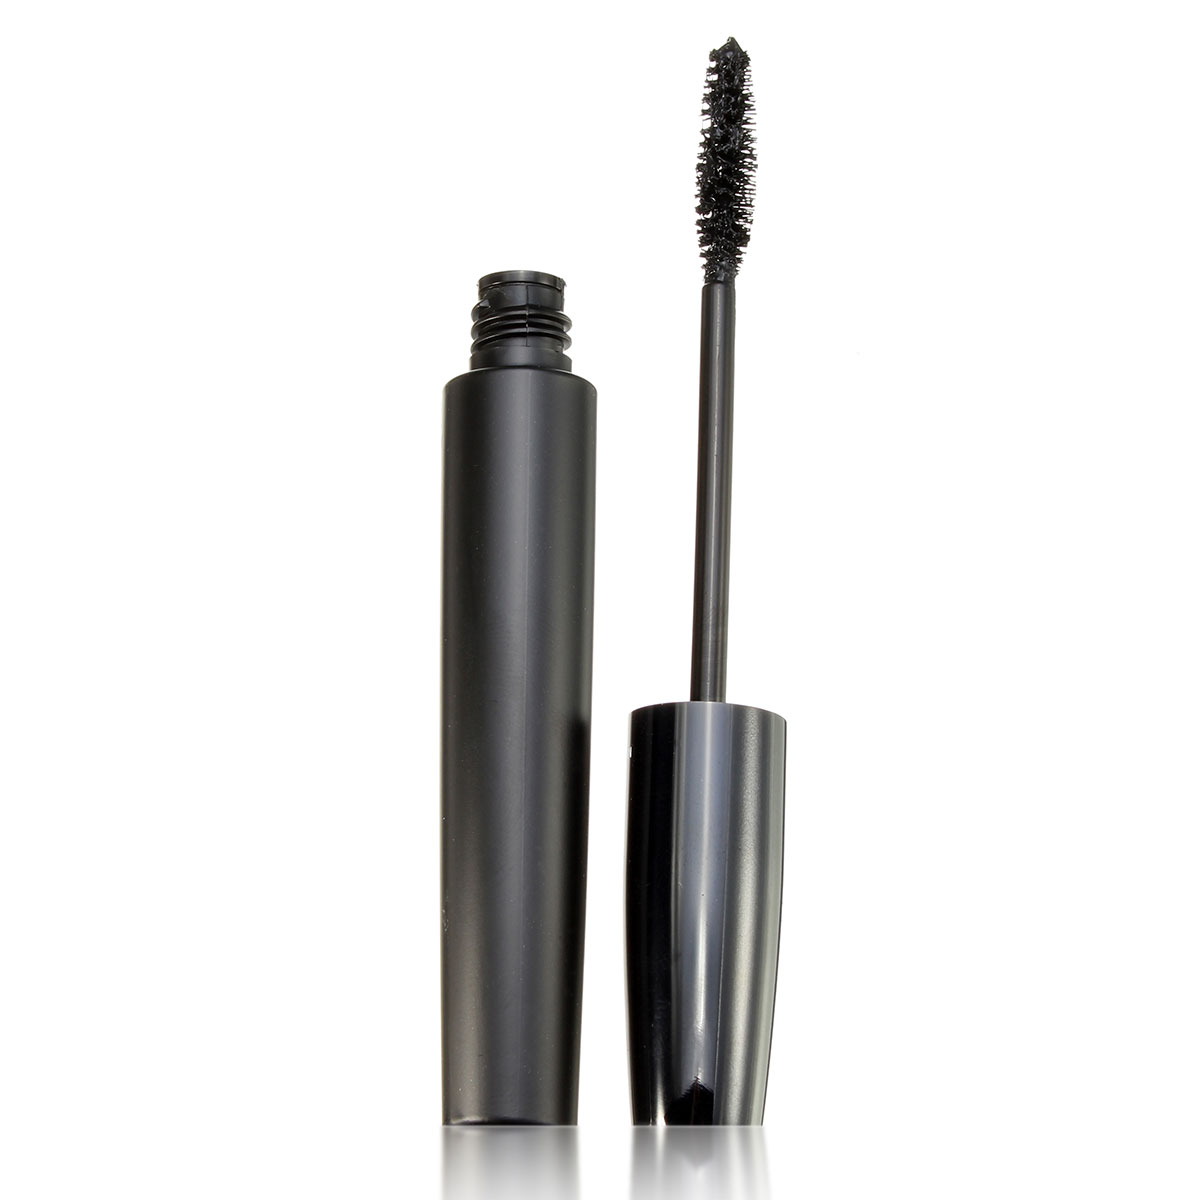 2Pcs QiBest Waterproof Eye Mascara 3D Fiber Curling Lash Makeup Eyelash Set